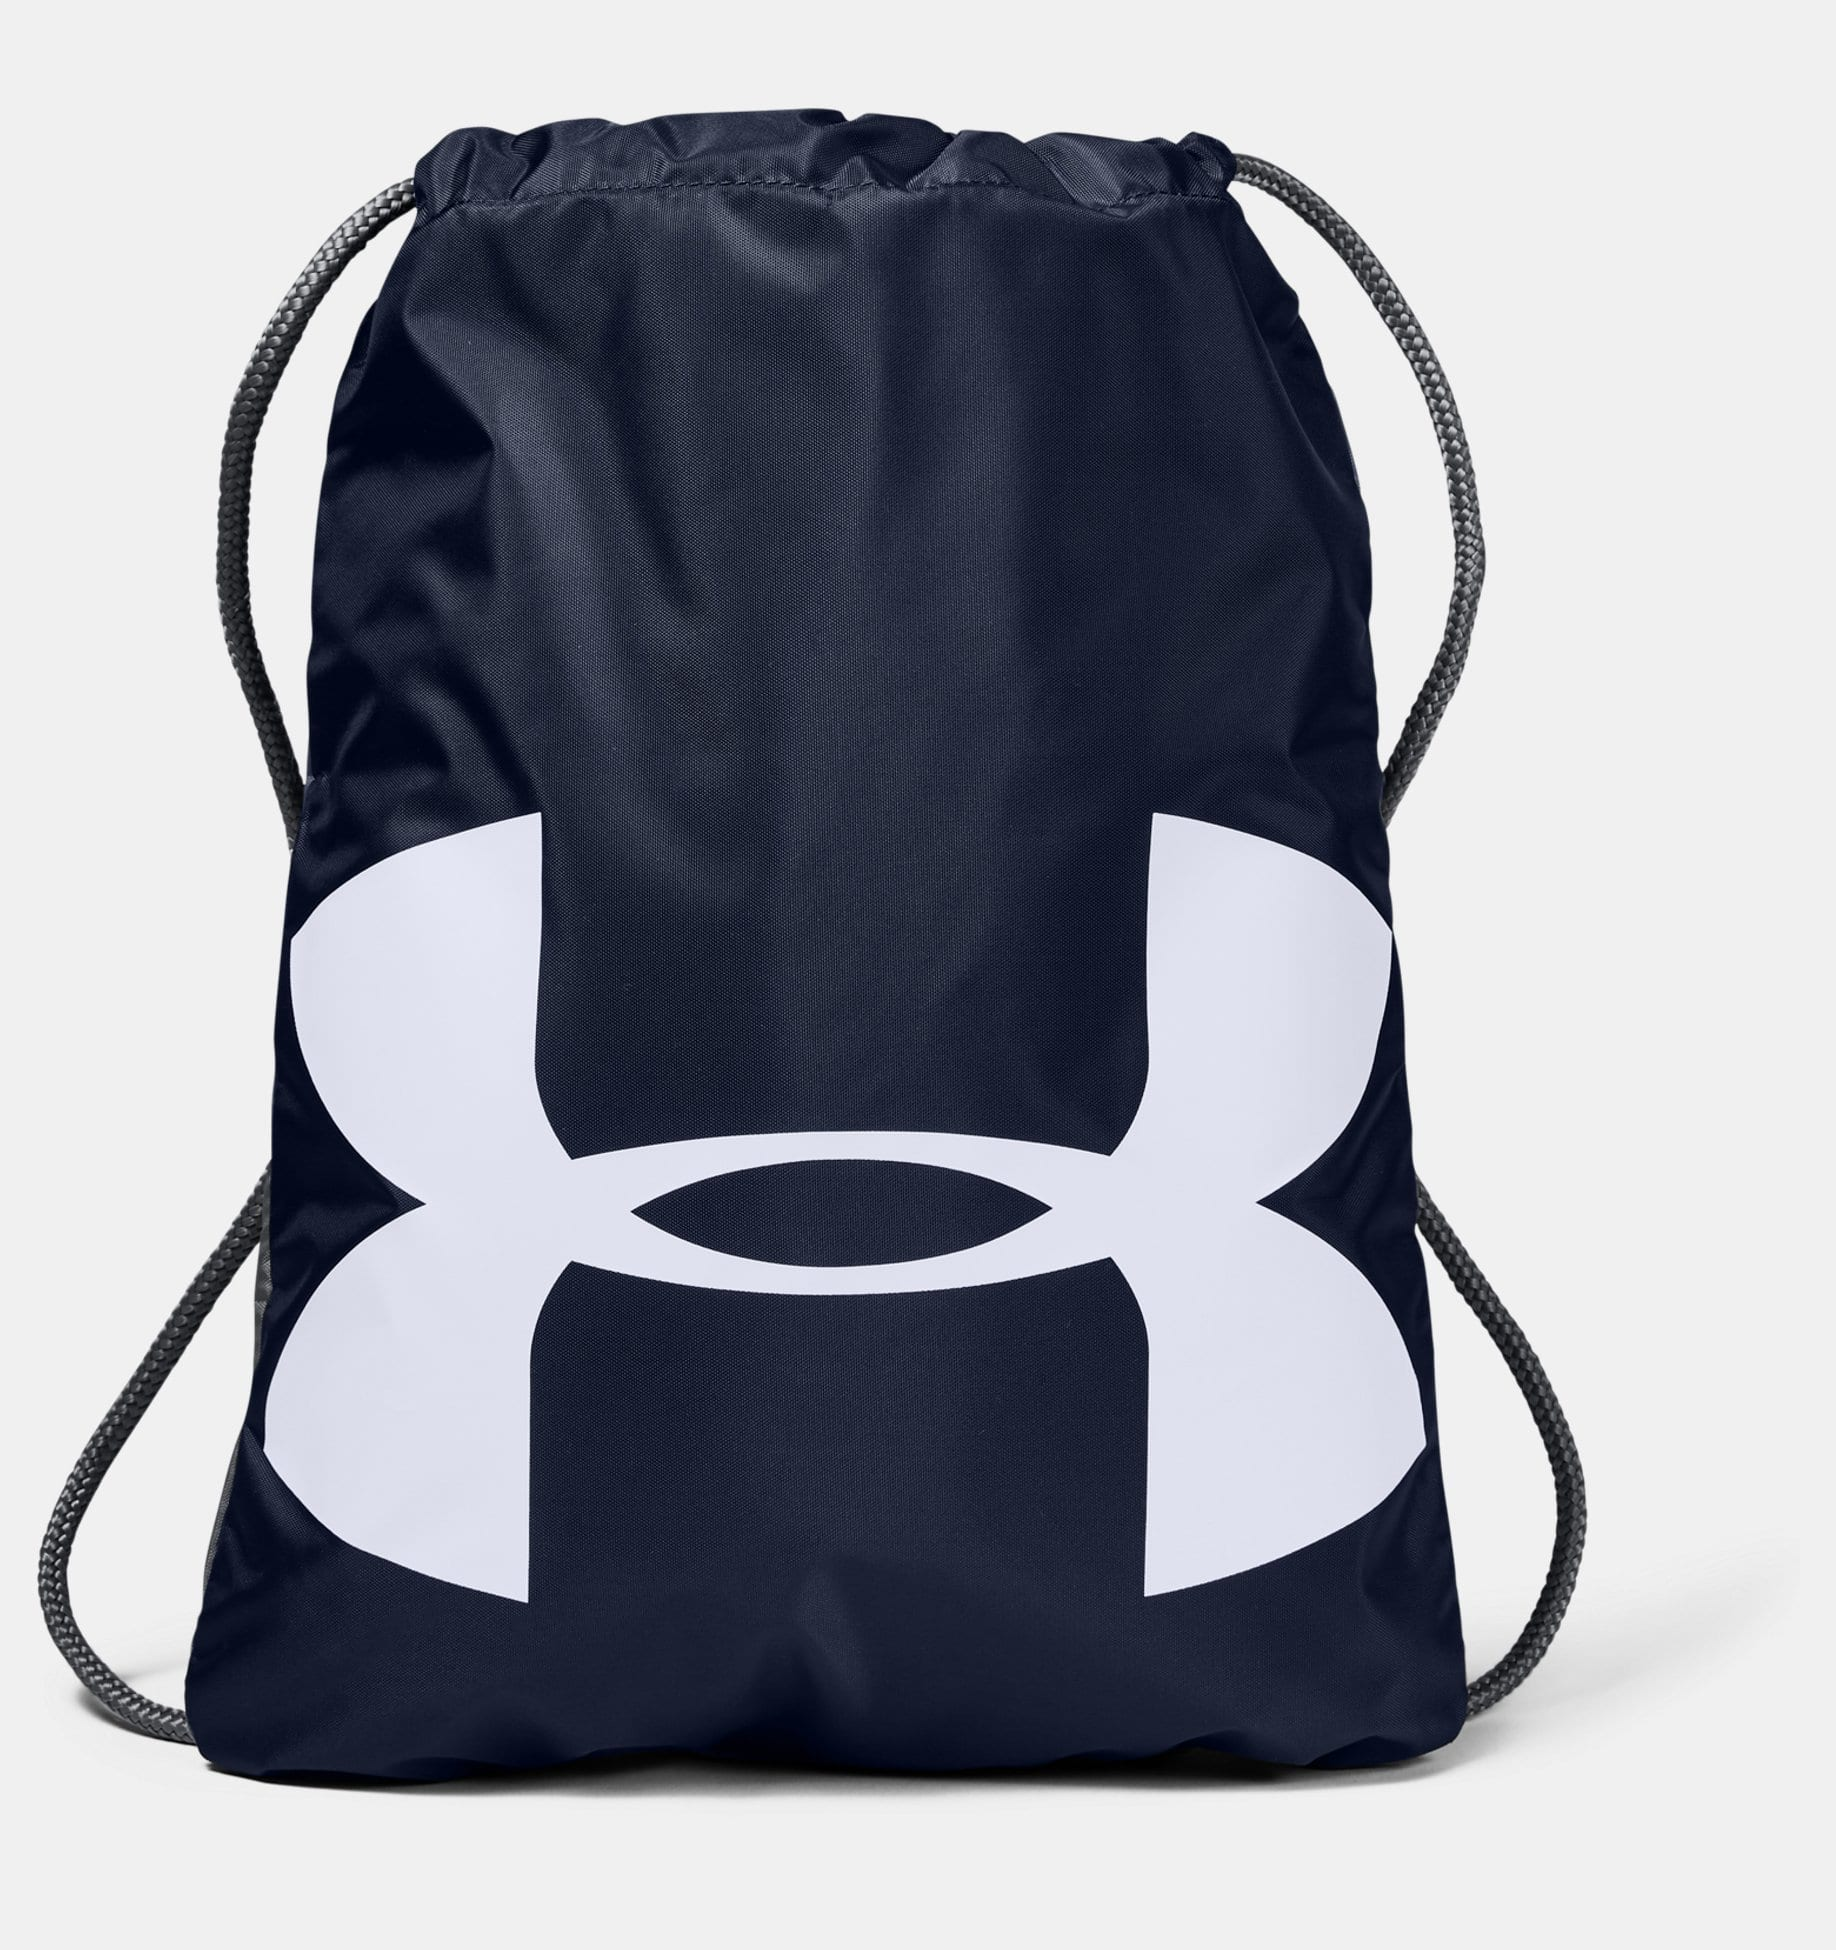 Under Armour: Sportsstyle Sackpack (various) from $12.74, Hustle 4.0 Backpack (various) from $22.50 & More + Free Shipping